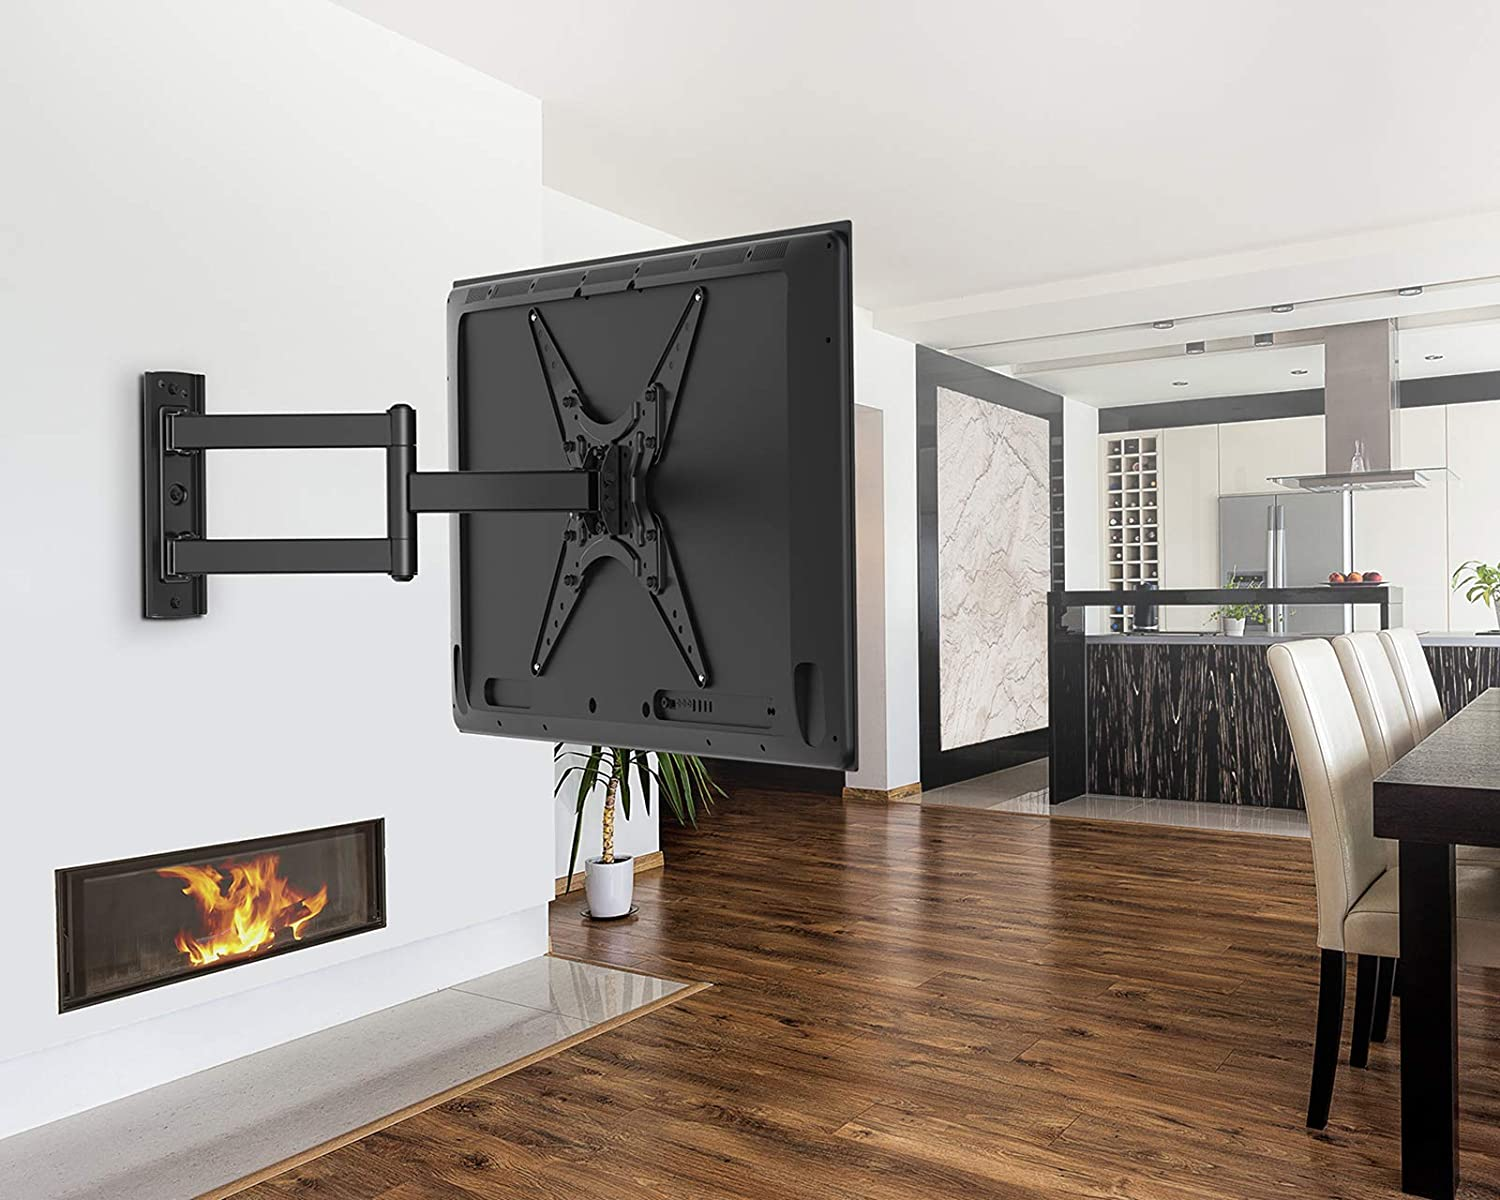 PERLESMITH TV Wall Mount for Most 26-55 Inch Flat Curved TVs with Swivels, Tilts & Extends 19.5 Inch - Wall Mount TV Bracket VESA 400x400 Fits LED, LCD, OLED, 4K TVs Up to 88 lbs, Black (PSMFK1)